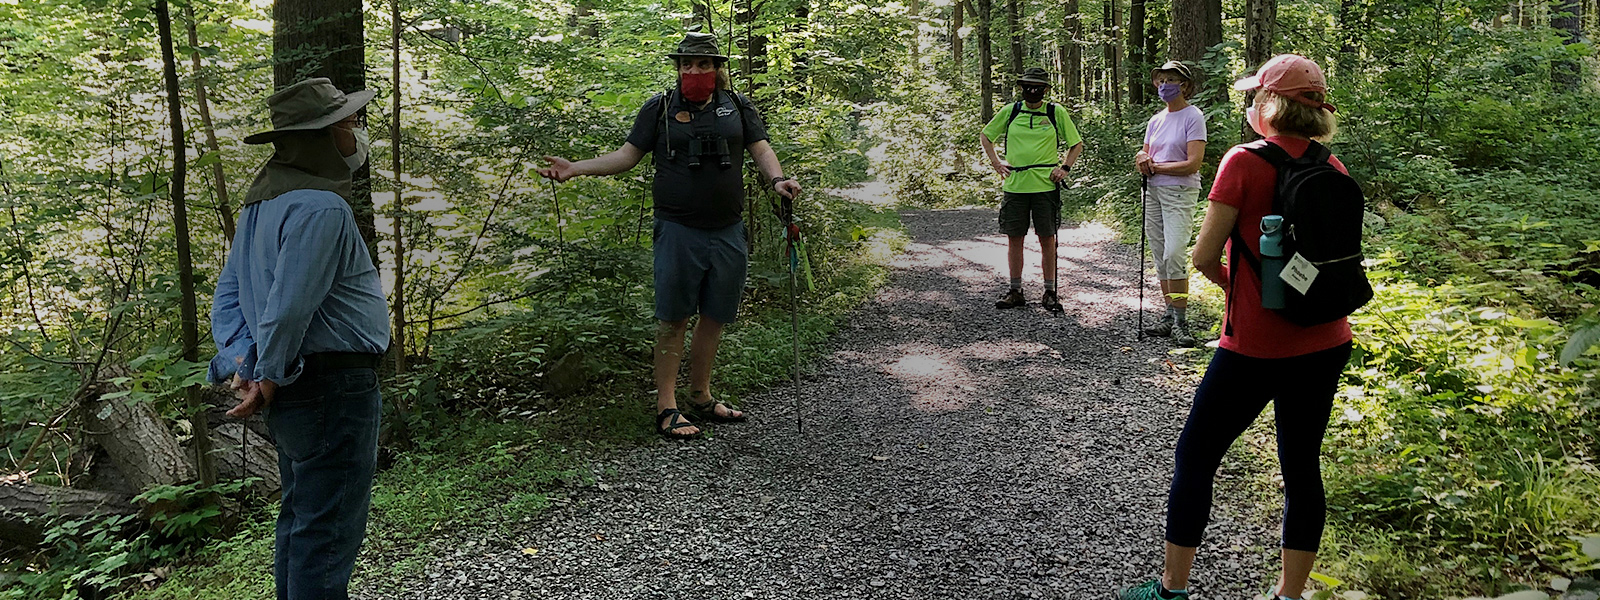 Olli members enjoy a socially distant hike